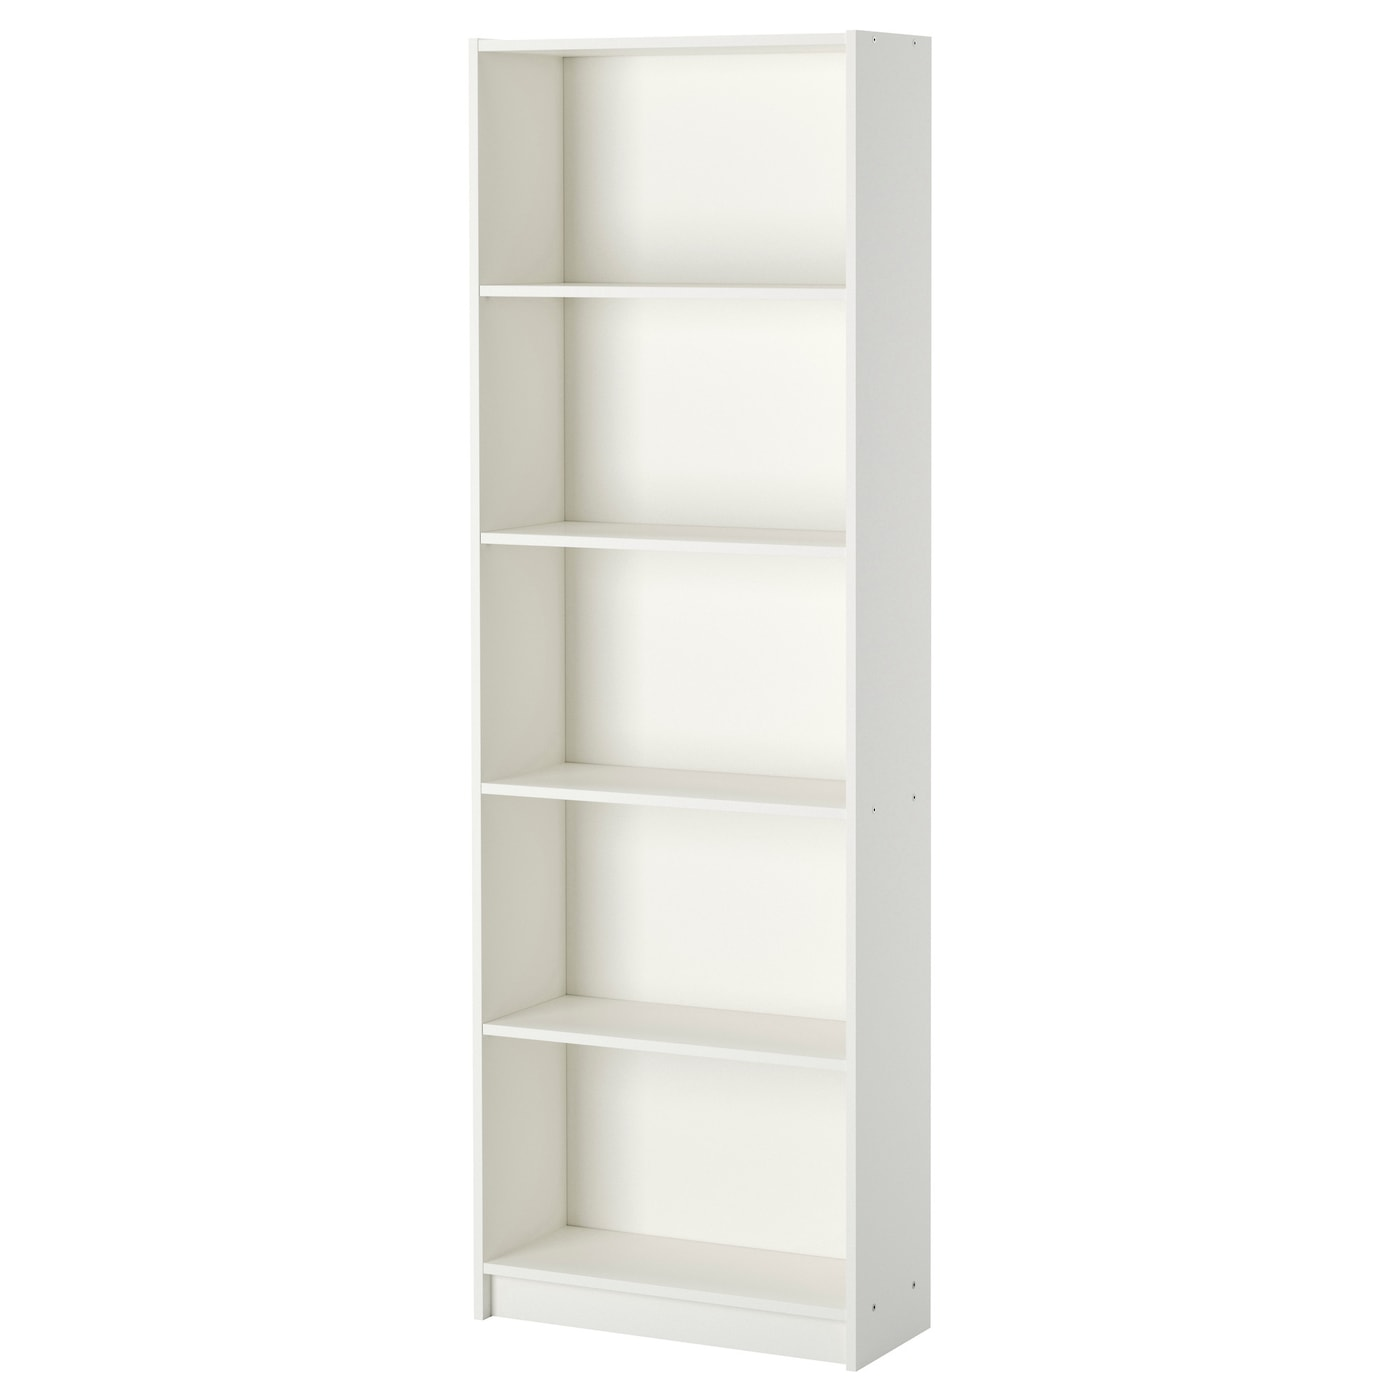 storage veneer billy shelves dublin between bookcases bookcase to en according products space your bookshelves ikea oak small bookshelf needs adapt furniture ie adjustable